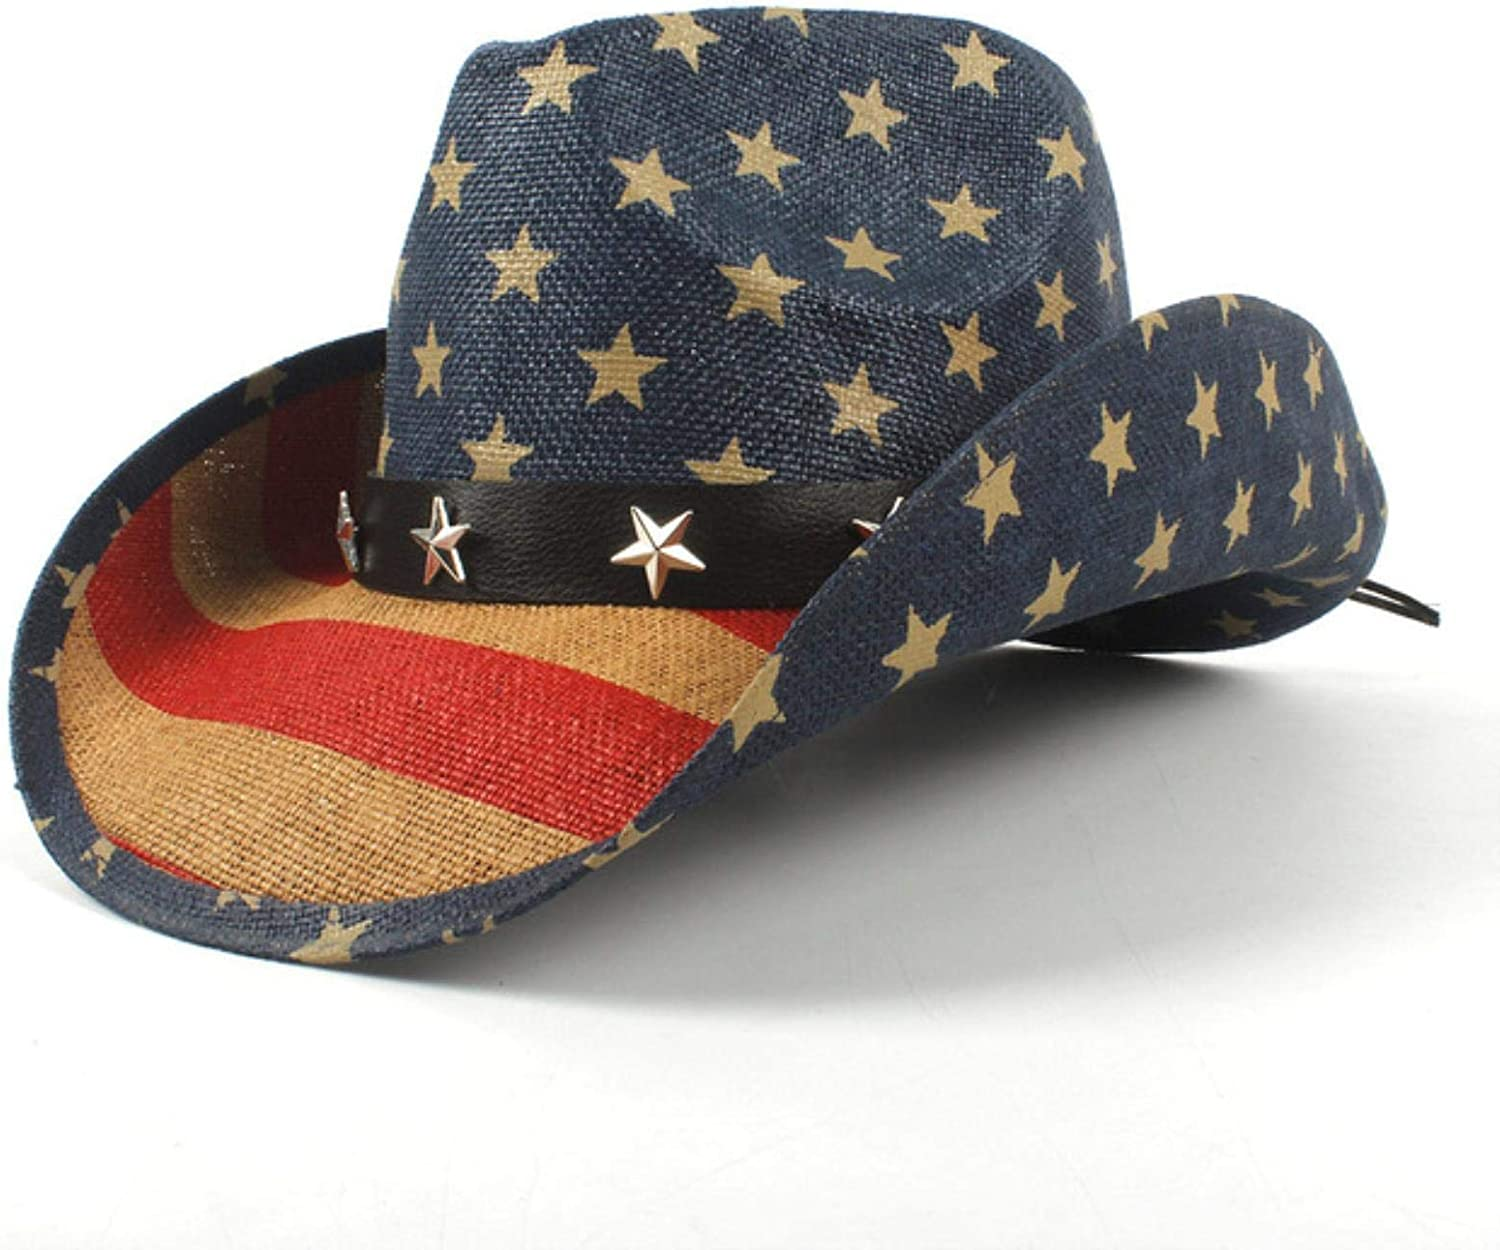 Summer Straw Men Cowboy Deluxe Hat Cowgirl Factory outlet Cap Sun Western Sombrero